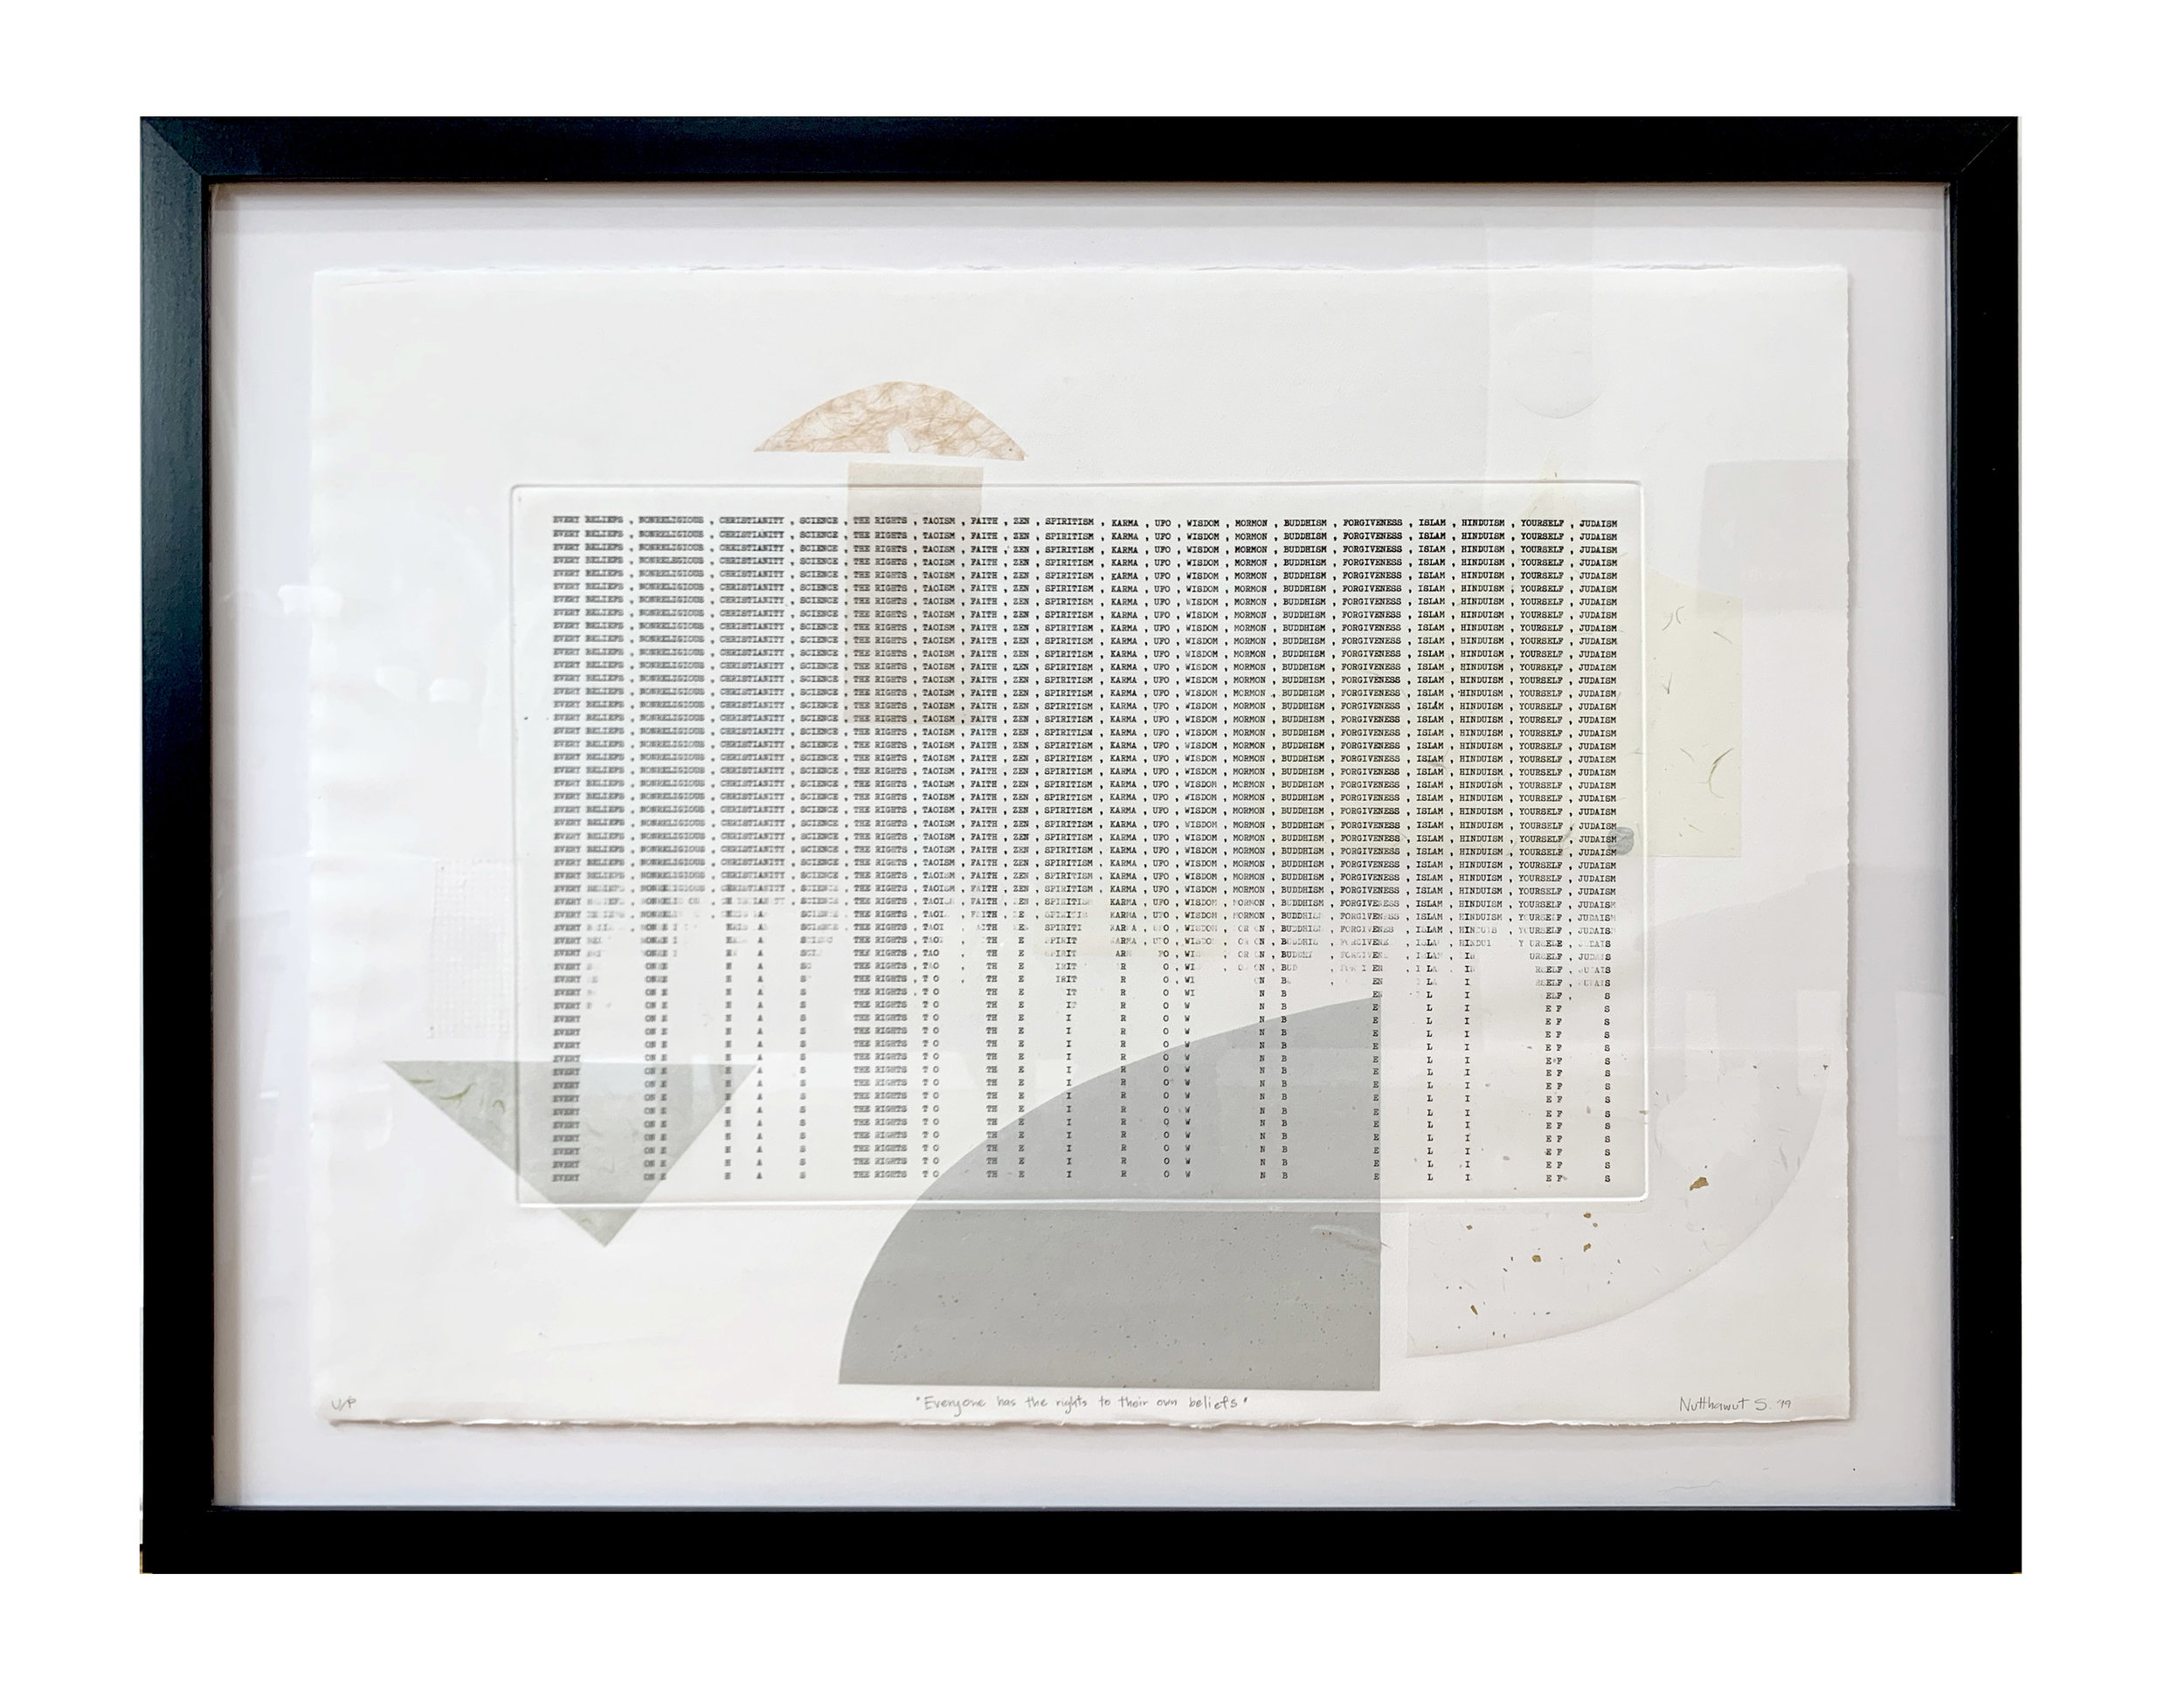 EVERYONE HAS THE RIGHTS TO THIER OWN BELIEFS (U/P Edition 1), 2019, Typewriter Art with Chine-Colle, 34 x 26 inches